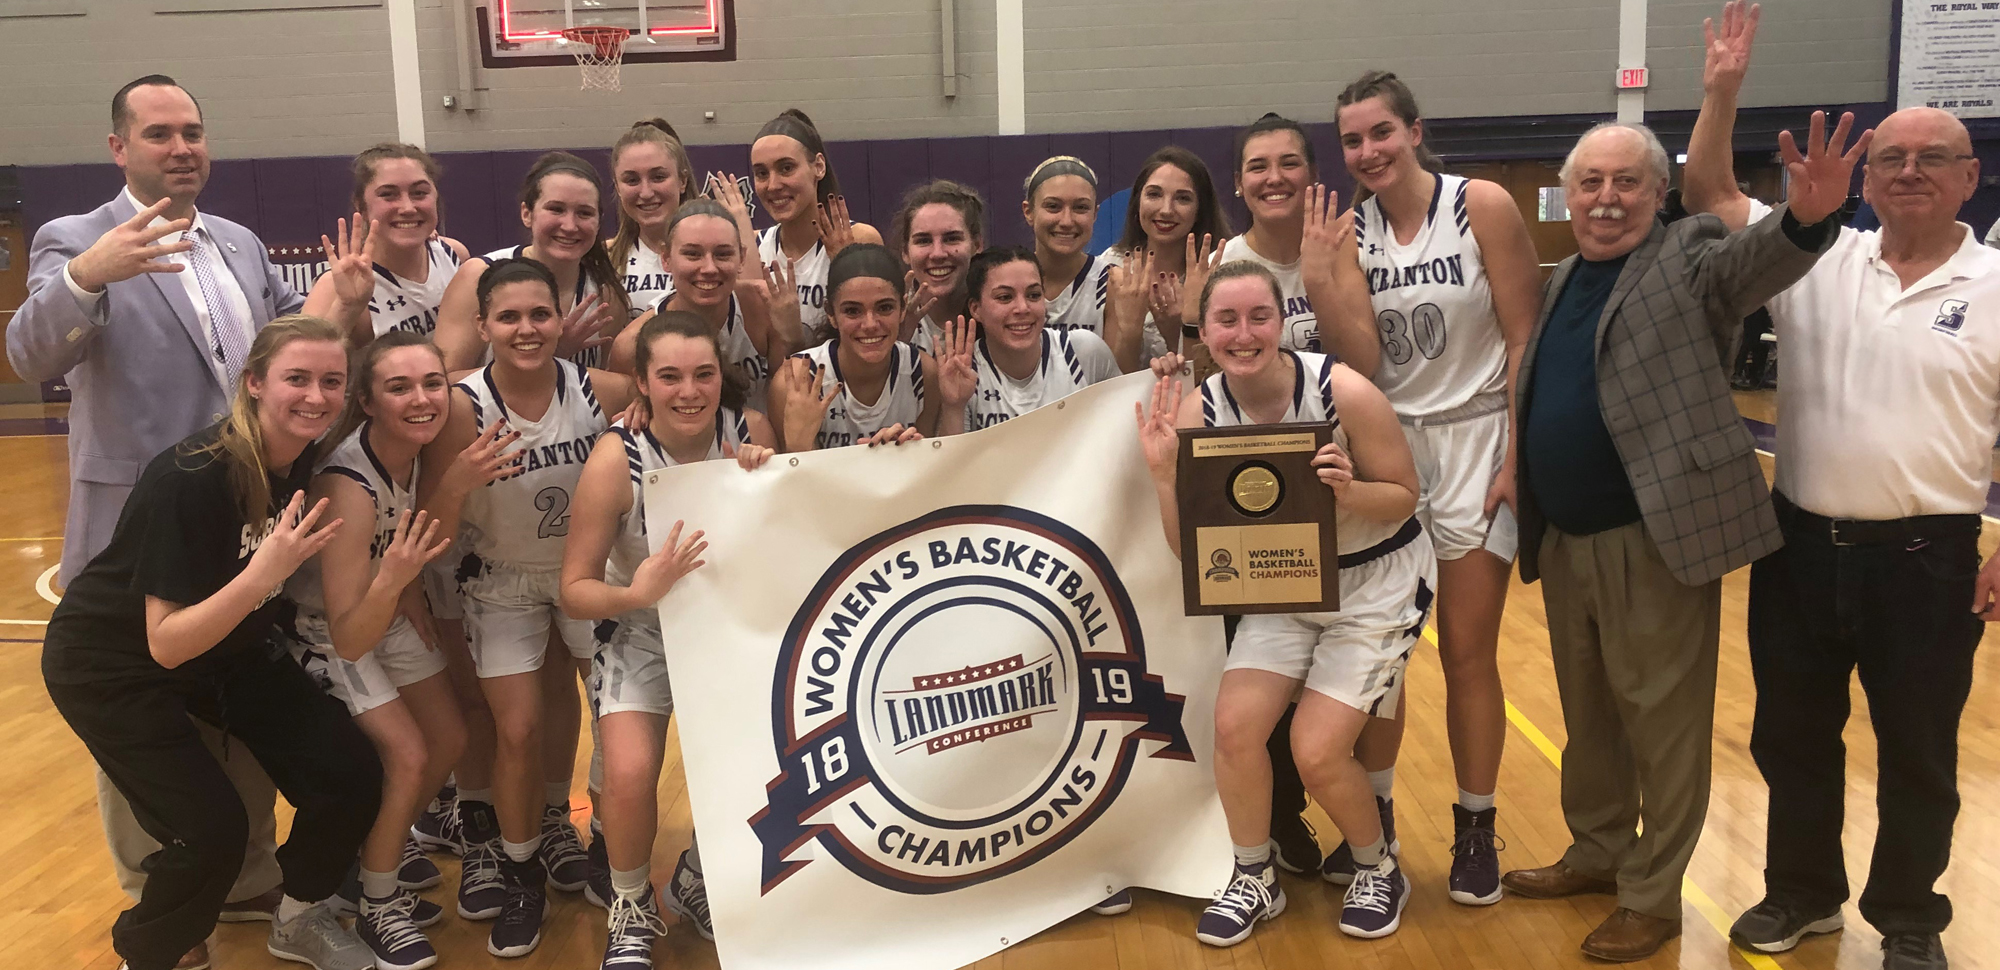 The University of Scranton women's basketball team captured their fourth straight Landmark Conference championship on Sunday in their 68-48 win over Elizabethtown inside the Long Center.